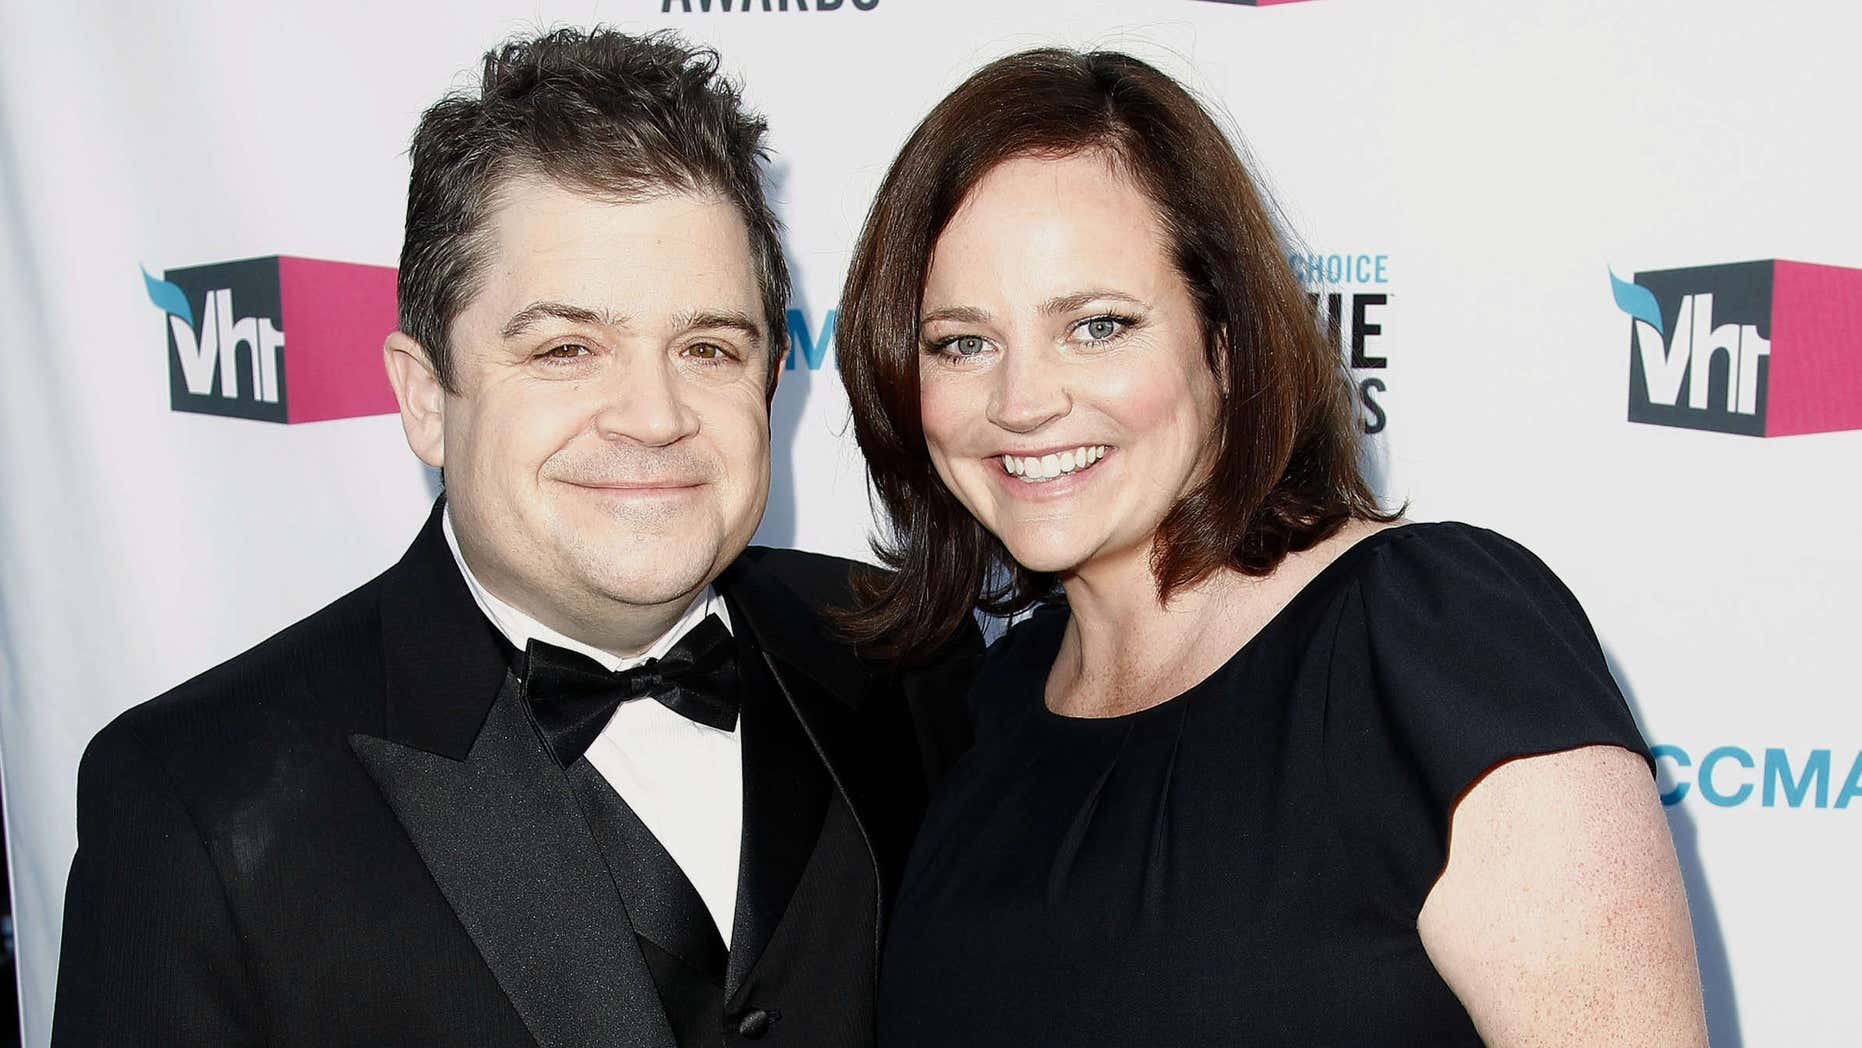 Jan. 12, 2012: Patton Oswalt, left, and his wife Michelle Eileen McNamara arrive at the 17th Annual Critics' Choice Movie Awards in Los Angeles.